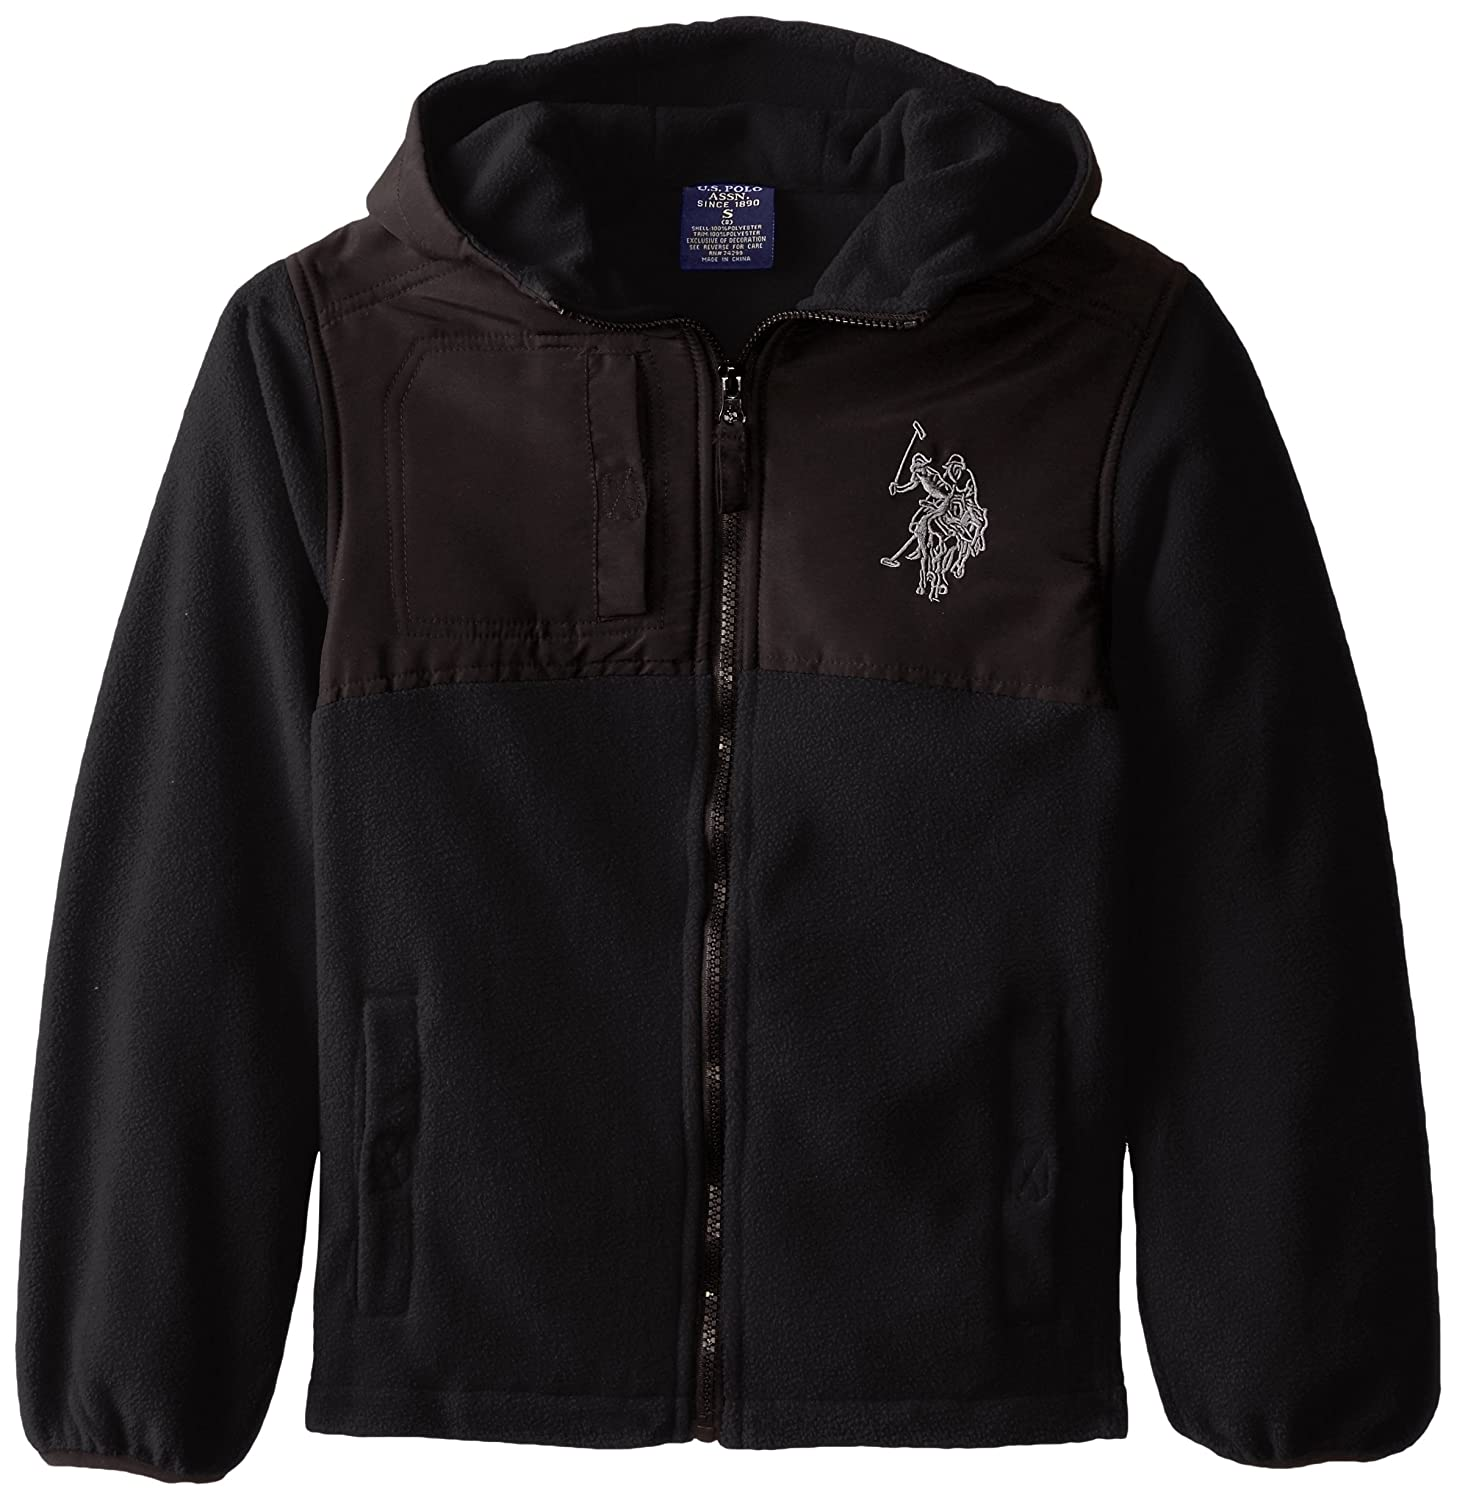 U.S. Polo Association Big Boys' Dewspo Trimmed Polar Fleece Jacket